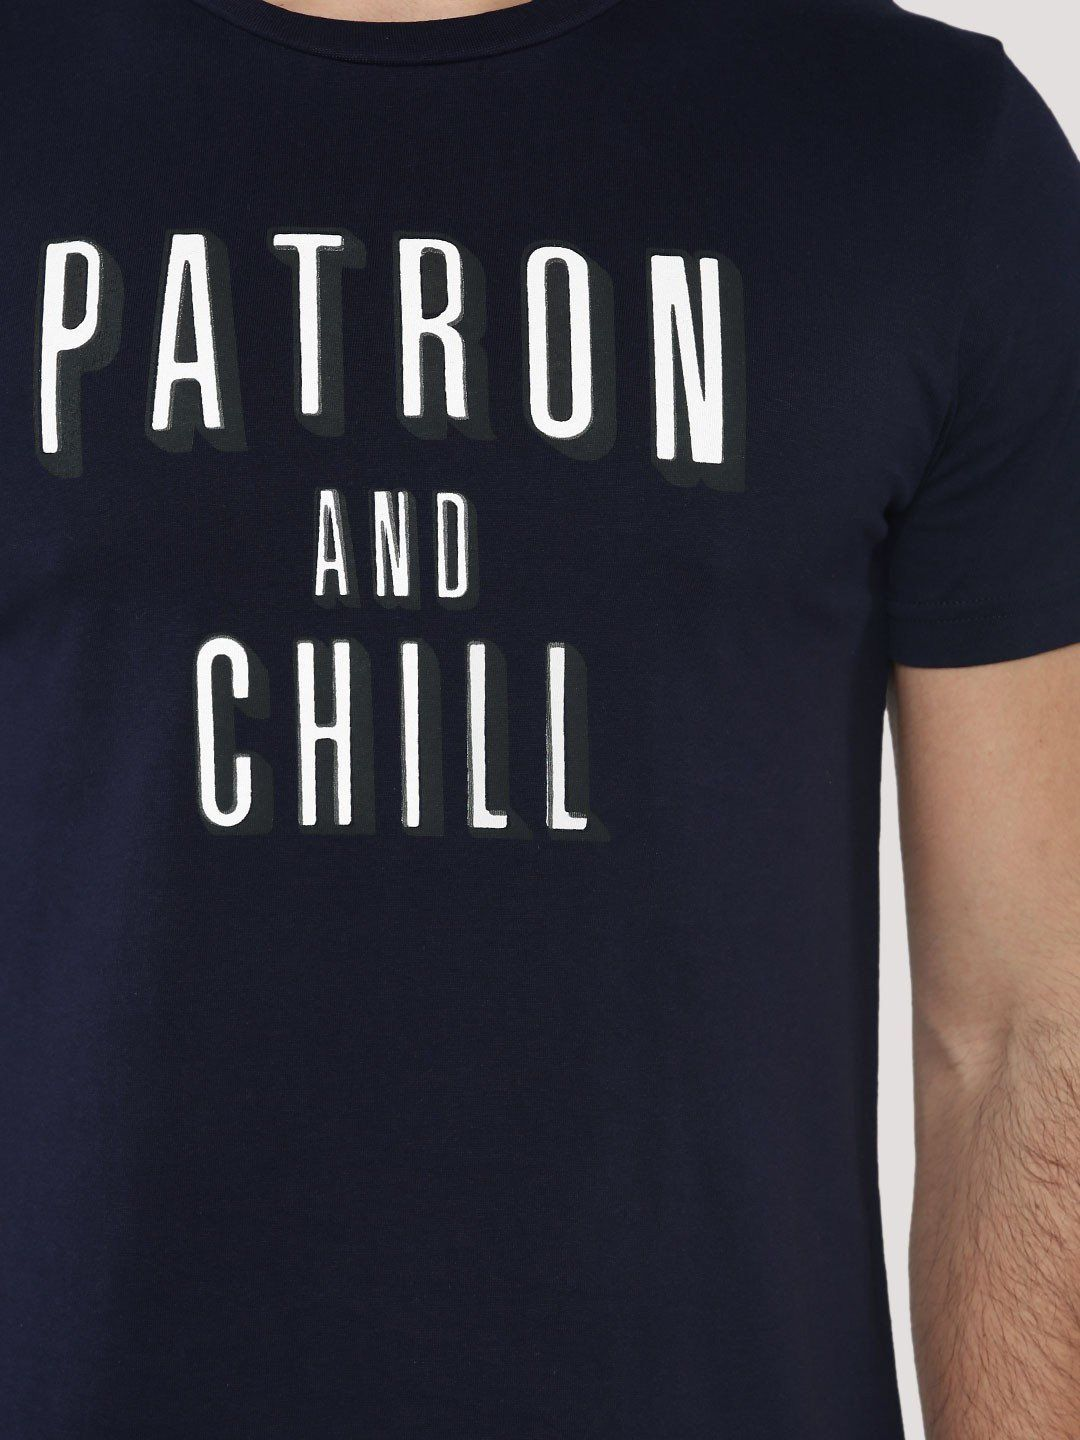 Patron And Chill Navy Blue T-Shirt - Fighting Fame  - 3